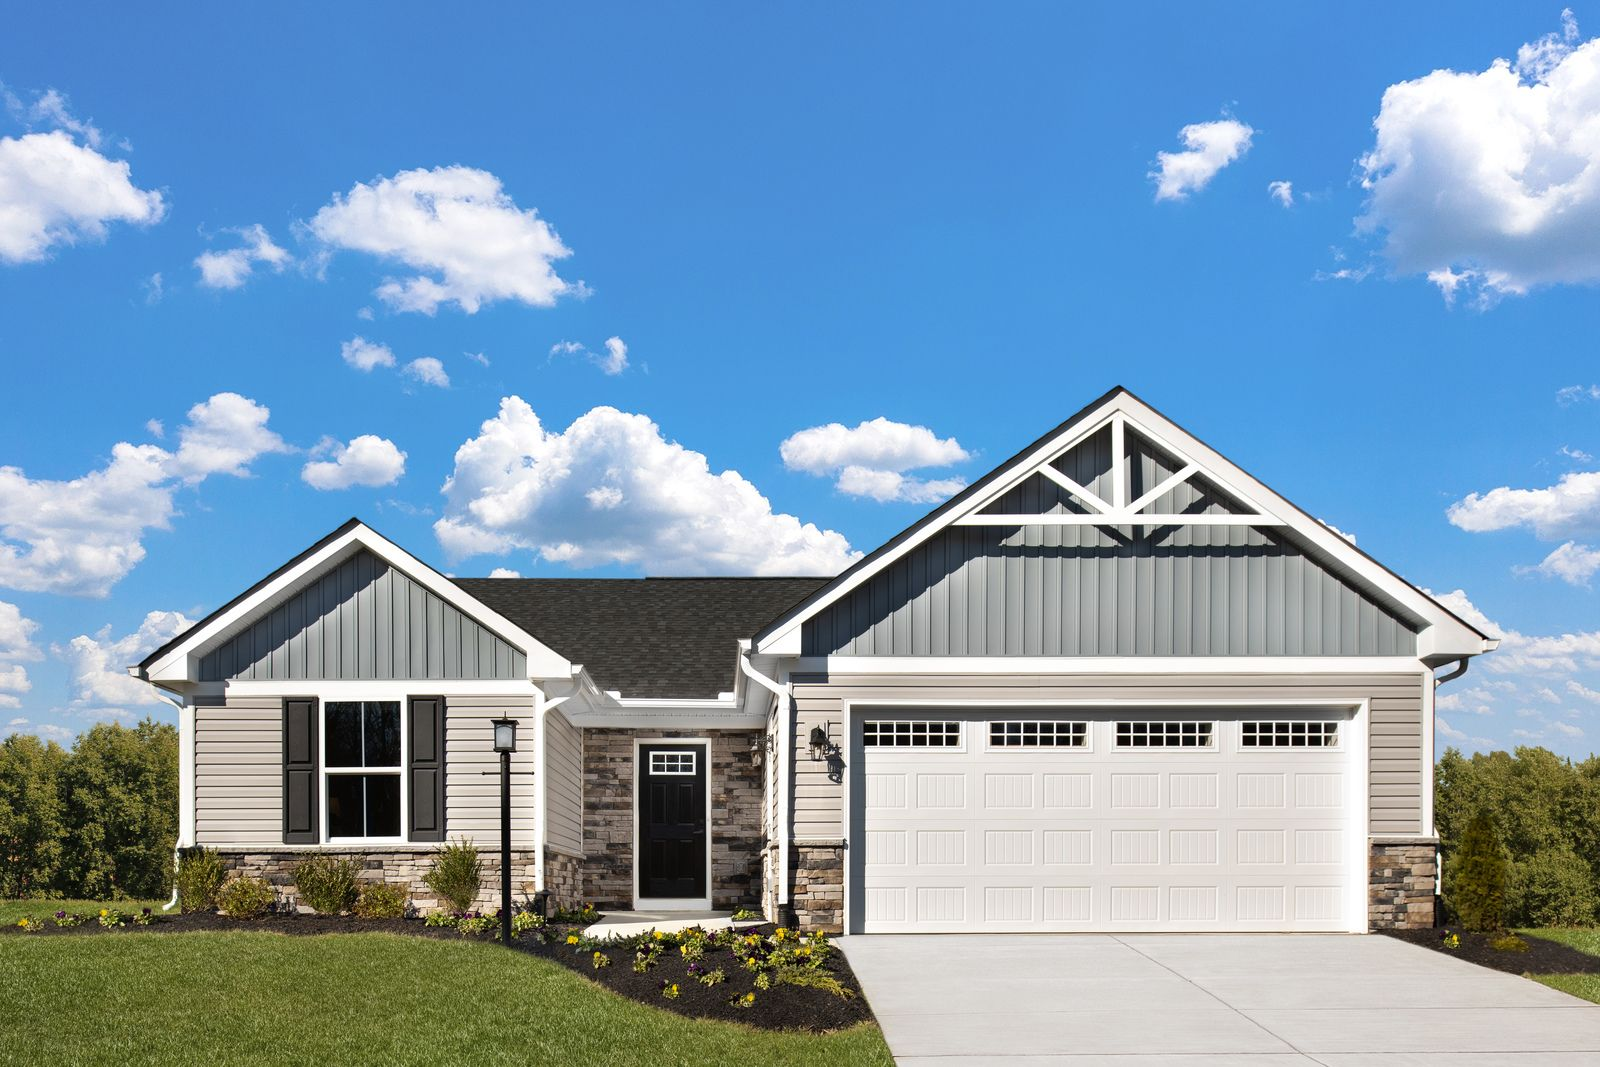 Welcome to Tartan Meadows - Easy Living Ranch Homes in Milford